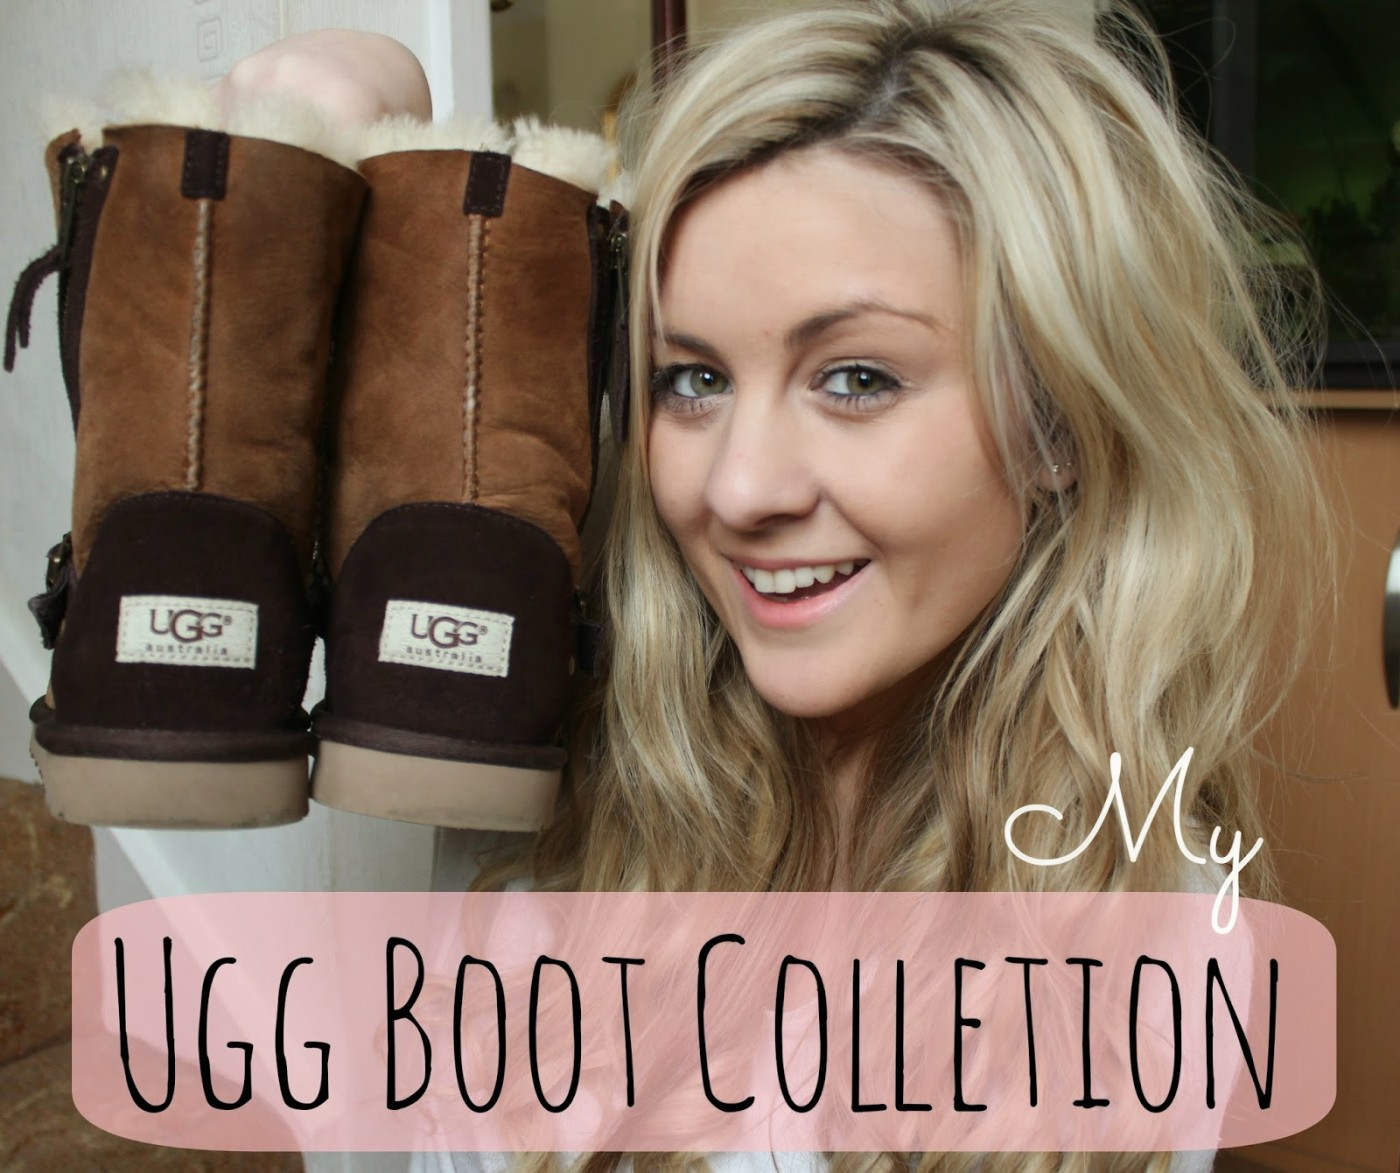 youtube, ugg boots, ugg boot collection, through chelsea's eyes,